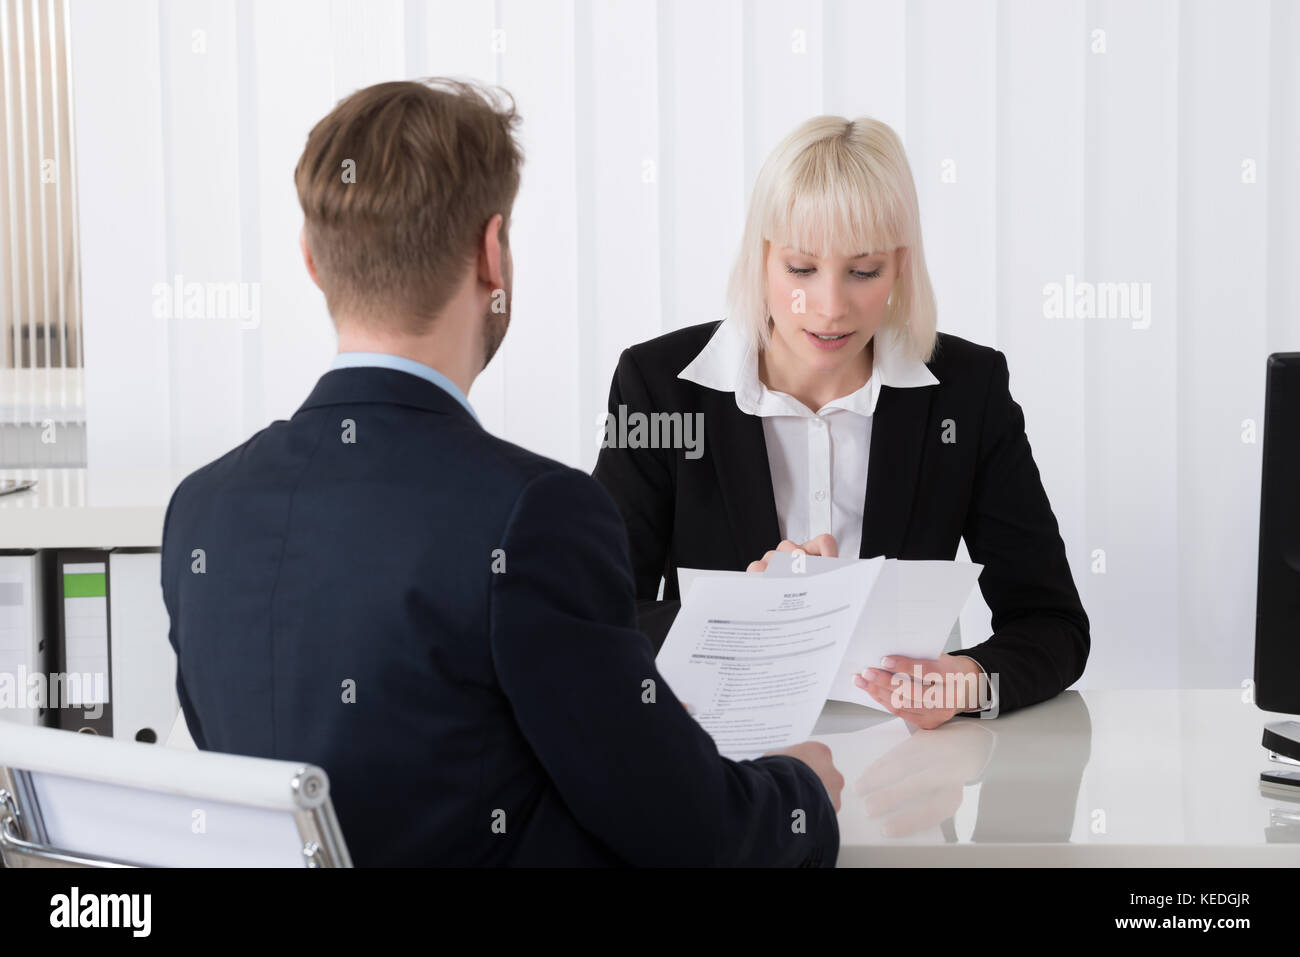 Young businesswoman discussing over reprendre avec candidat masculin in office Banque D'Images